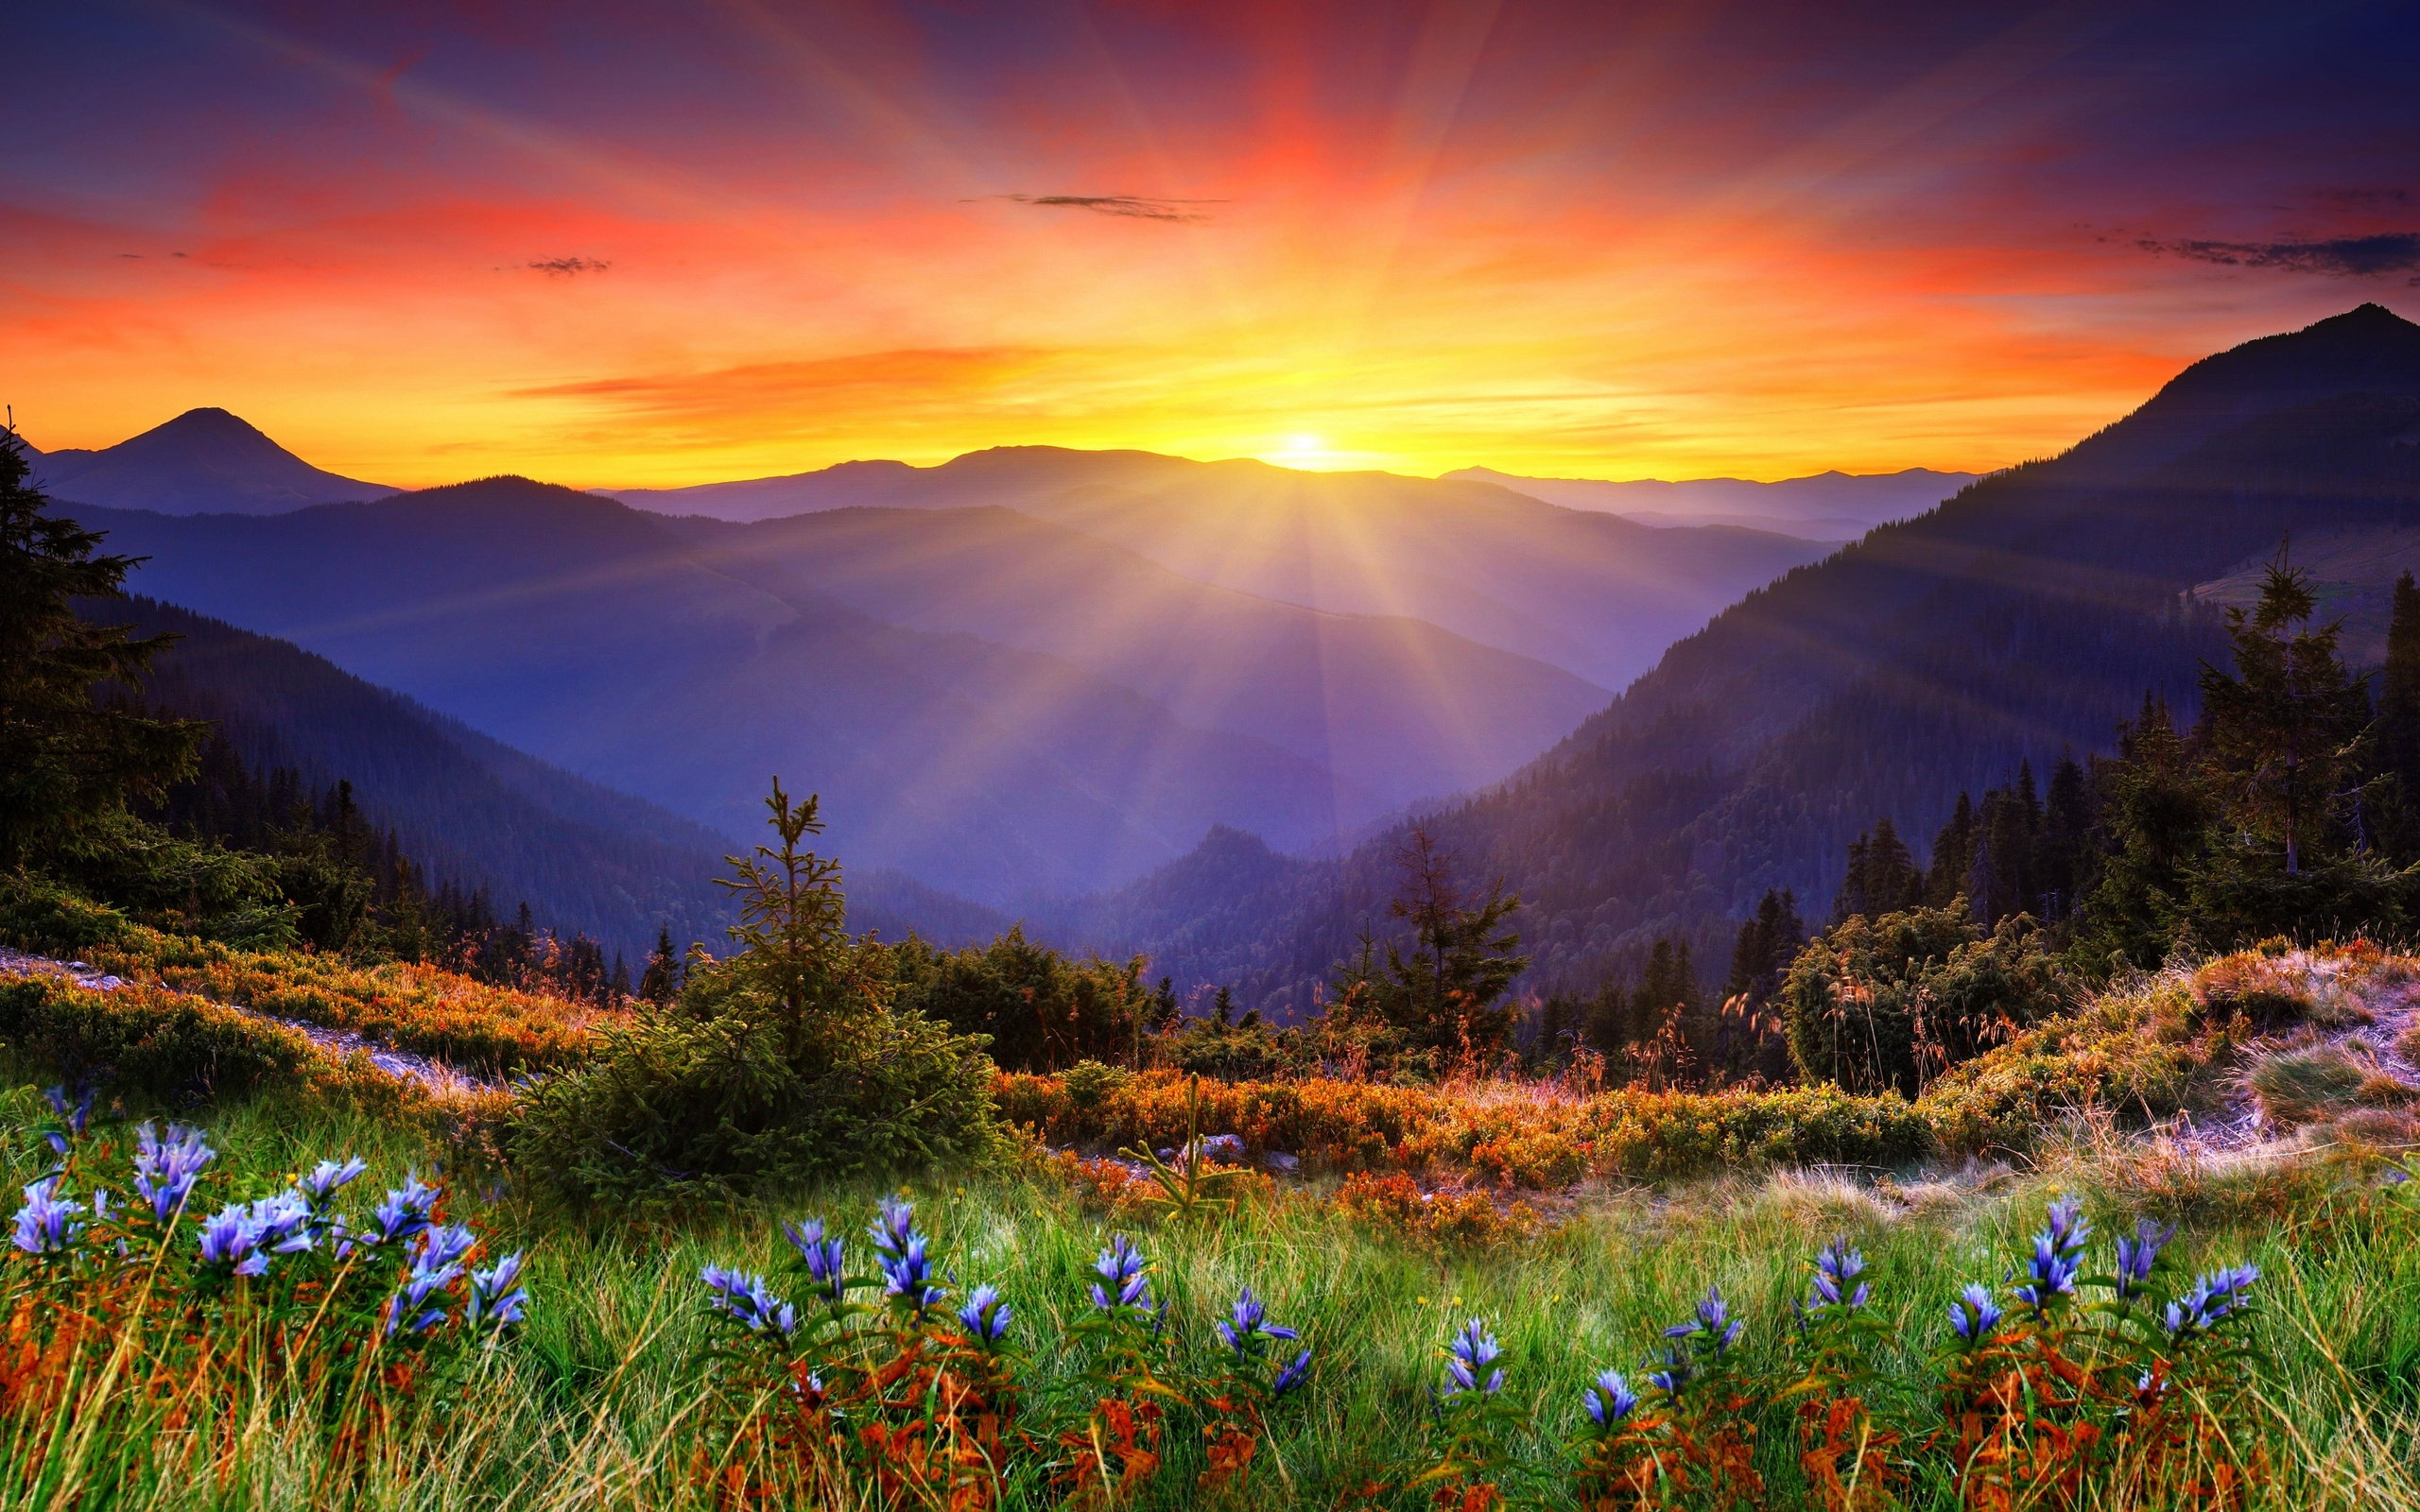 Wallpaper Scenic Pictures